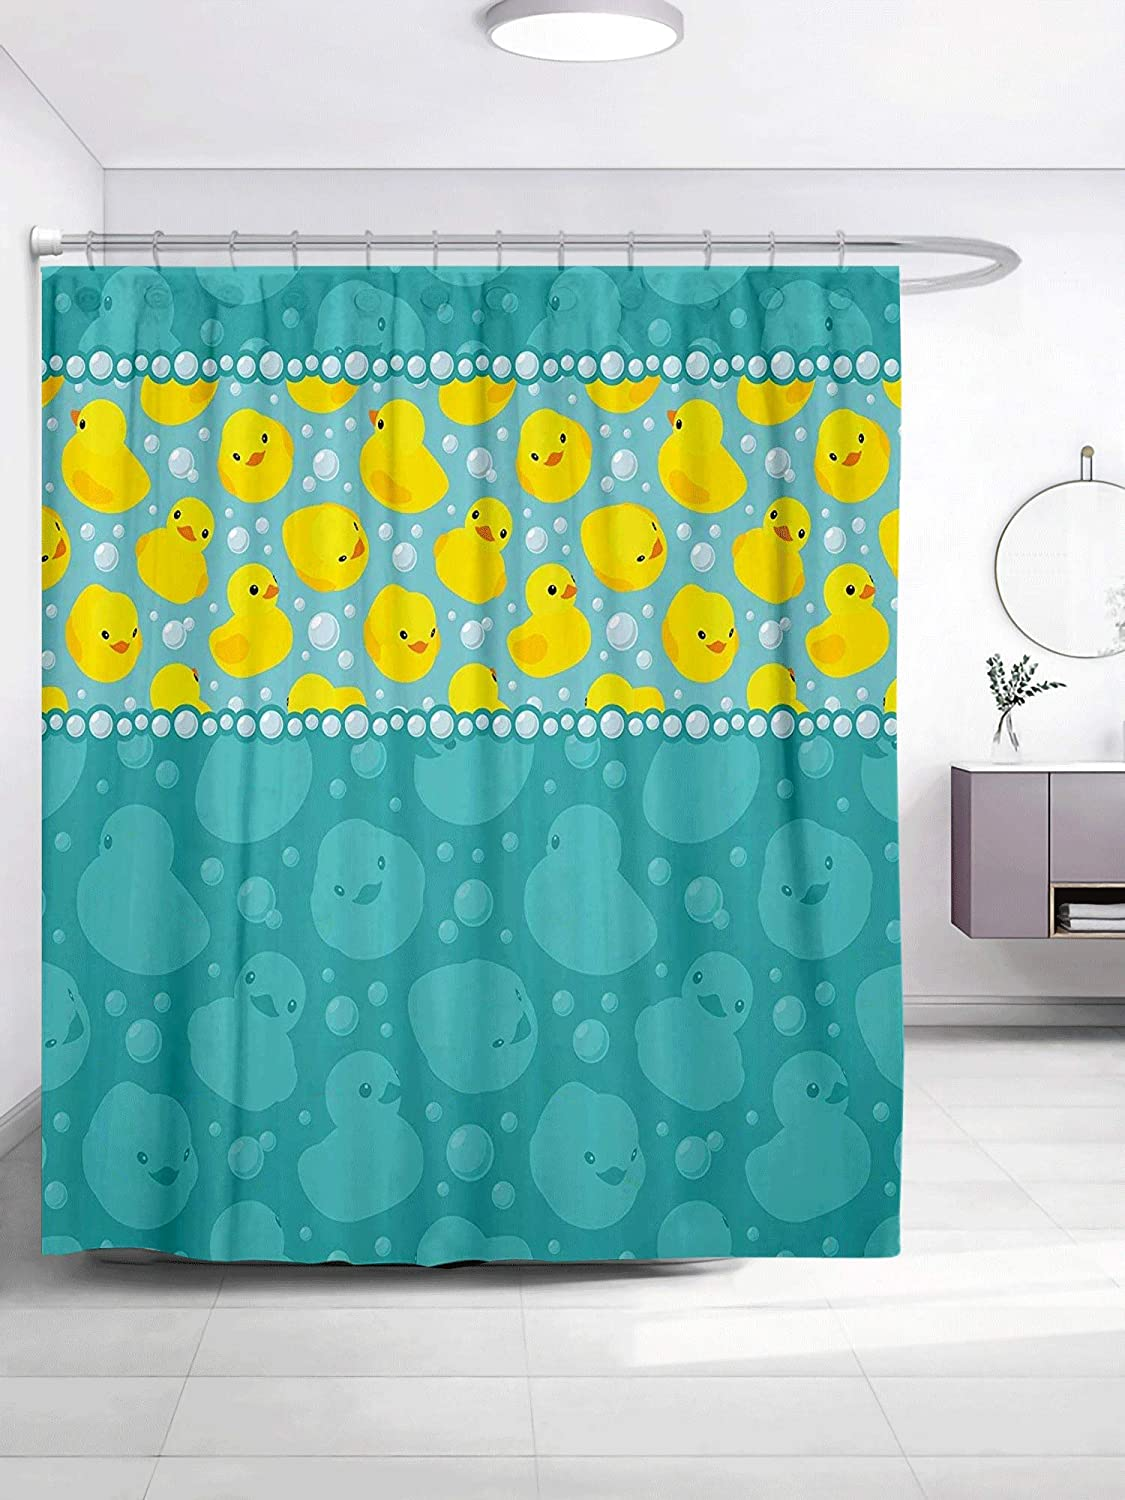 GOOESING Rubber Duck Shower Curtain Set, Cute Yellow Cartoon Duckies Swimming in Water Pattern with Fun Bubbles Aqua Colors, Fabric Bathroom Decor with Hooks, Teal Yellow